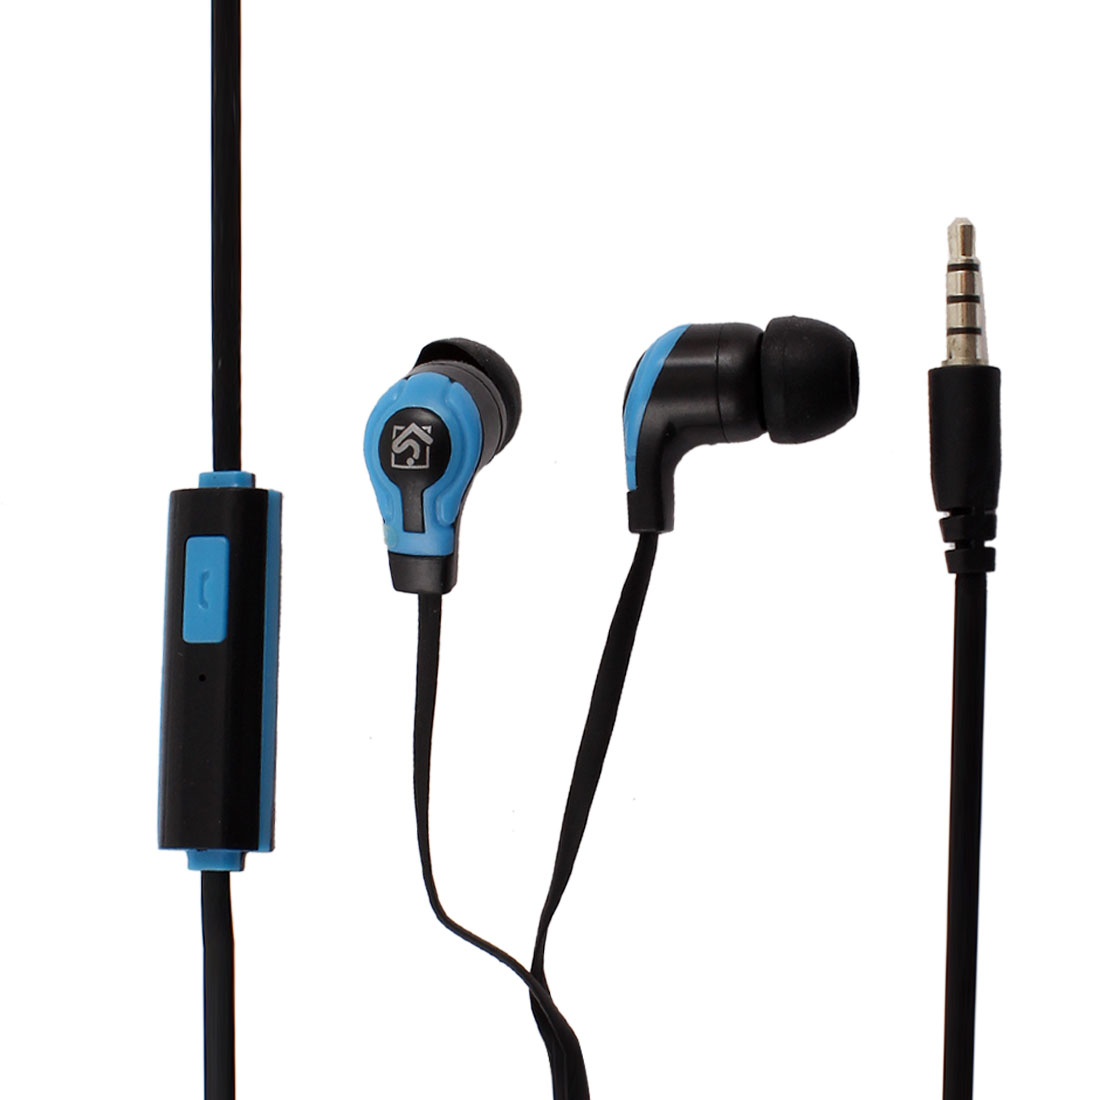 3.5mm Connector In Ear Stereo Headphone Earphone Blue Black for PC MP3 MP4 DVD